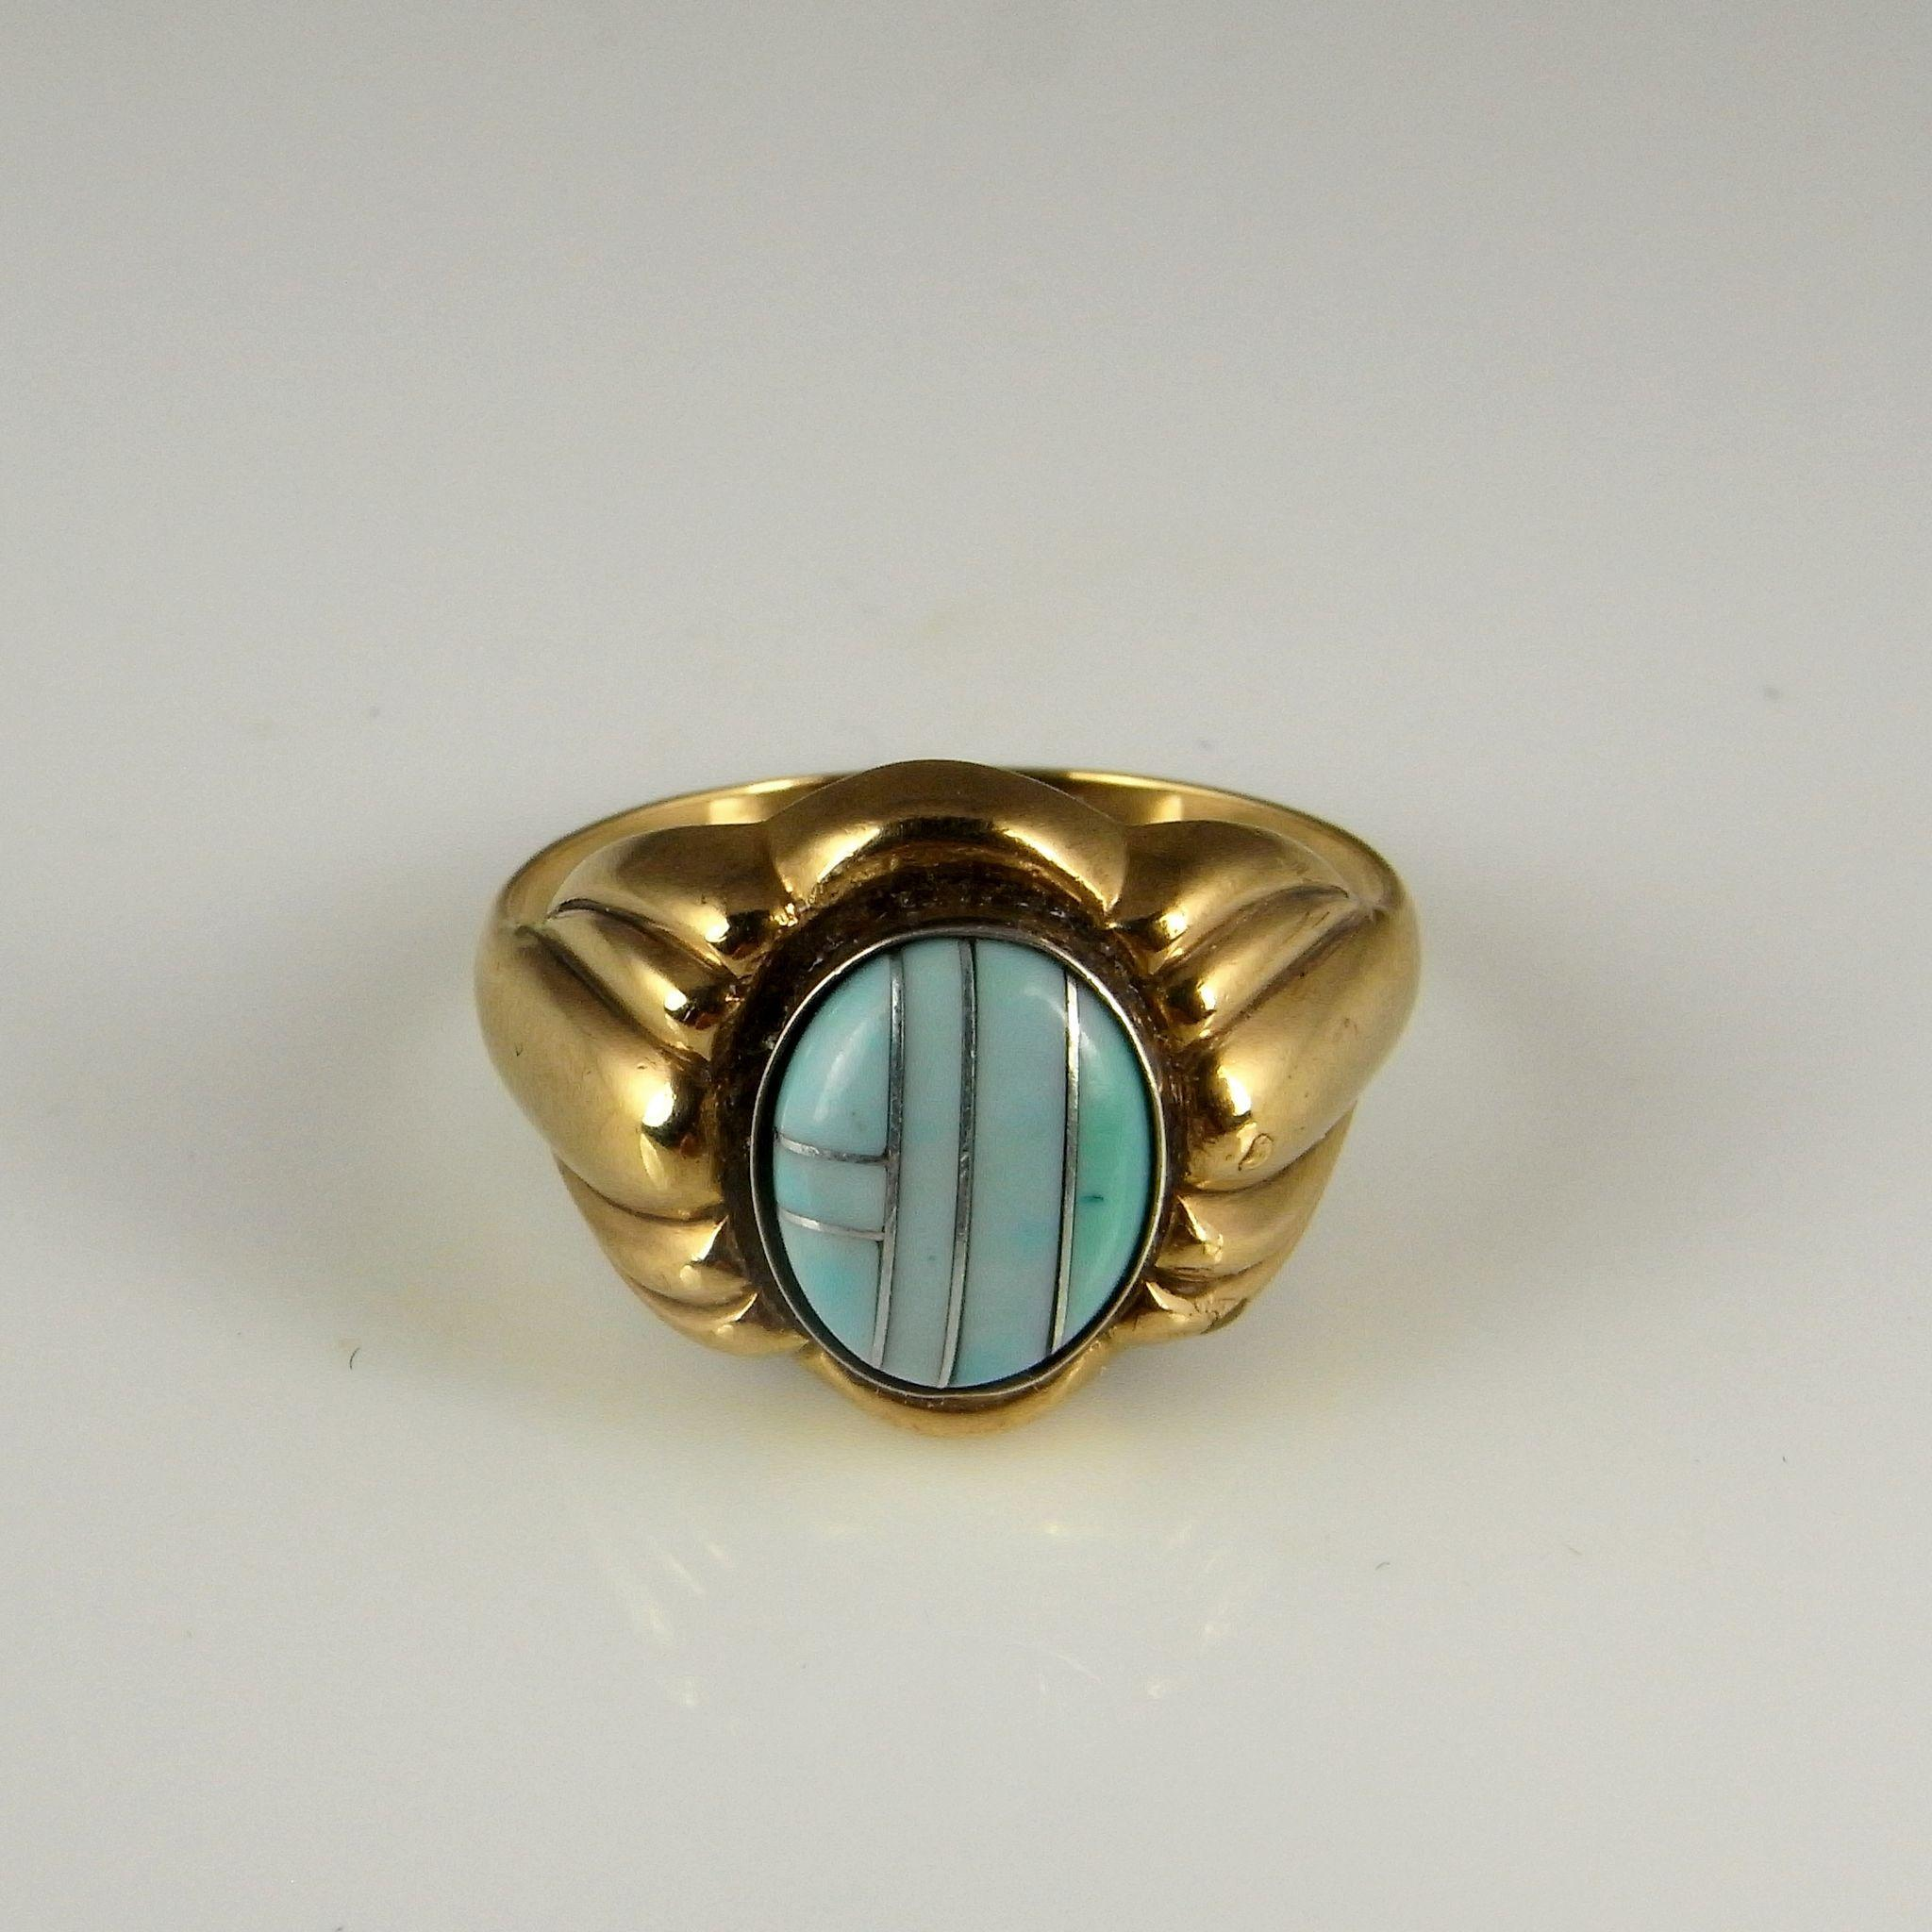 Antique Turquoise Ring Art Deco Gold Ring 1930s Ring Art